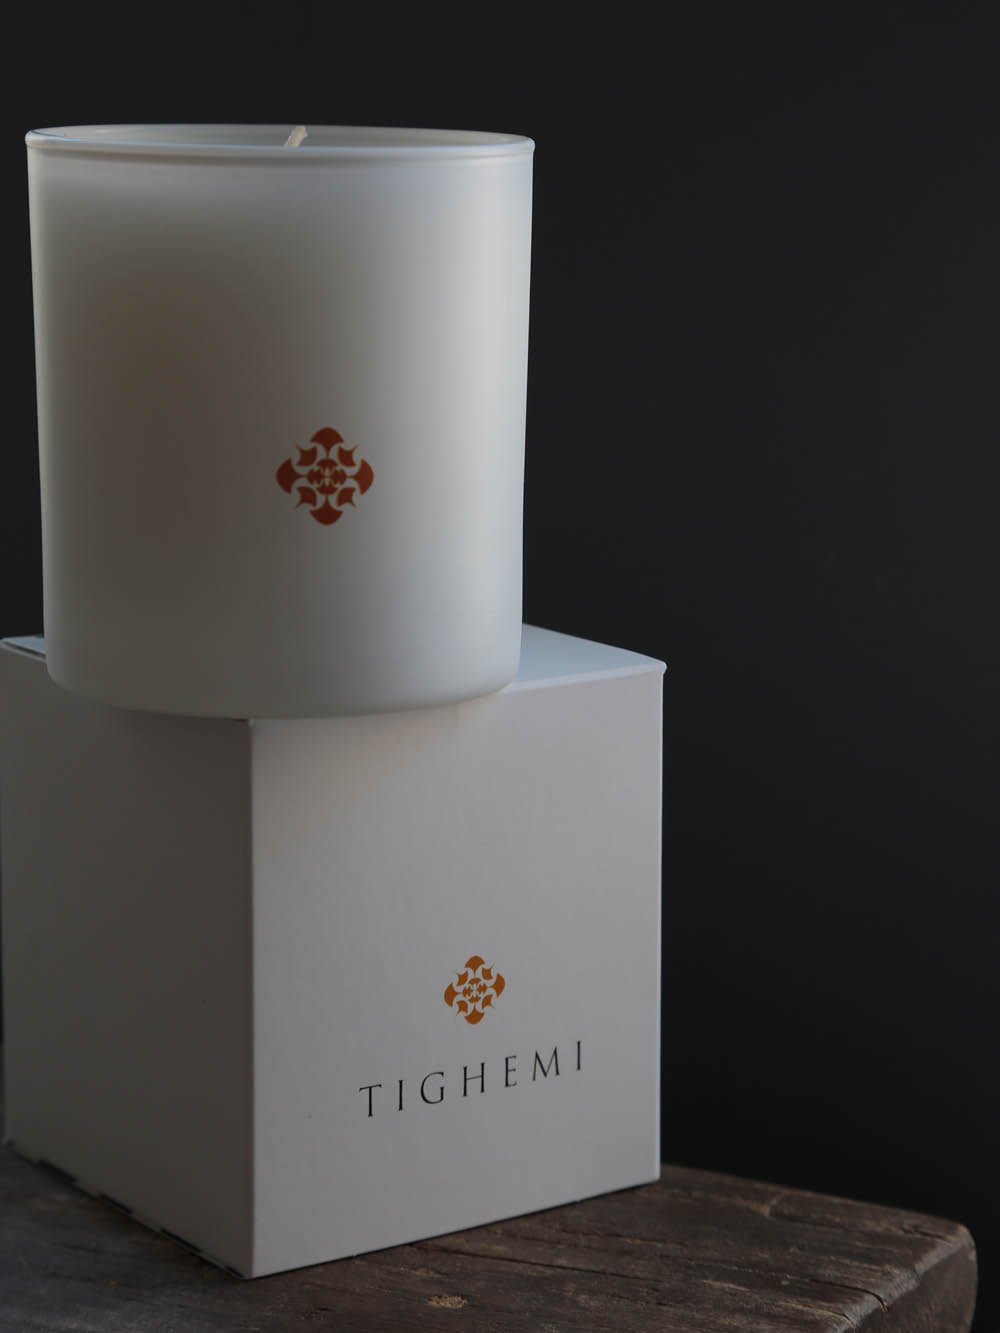 Tighemi Signature Sandalwood and Cardamom Scented Candle